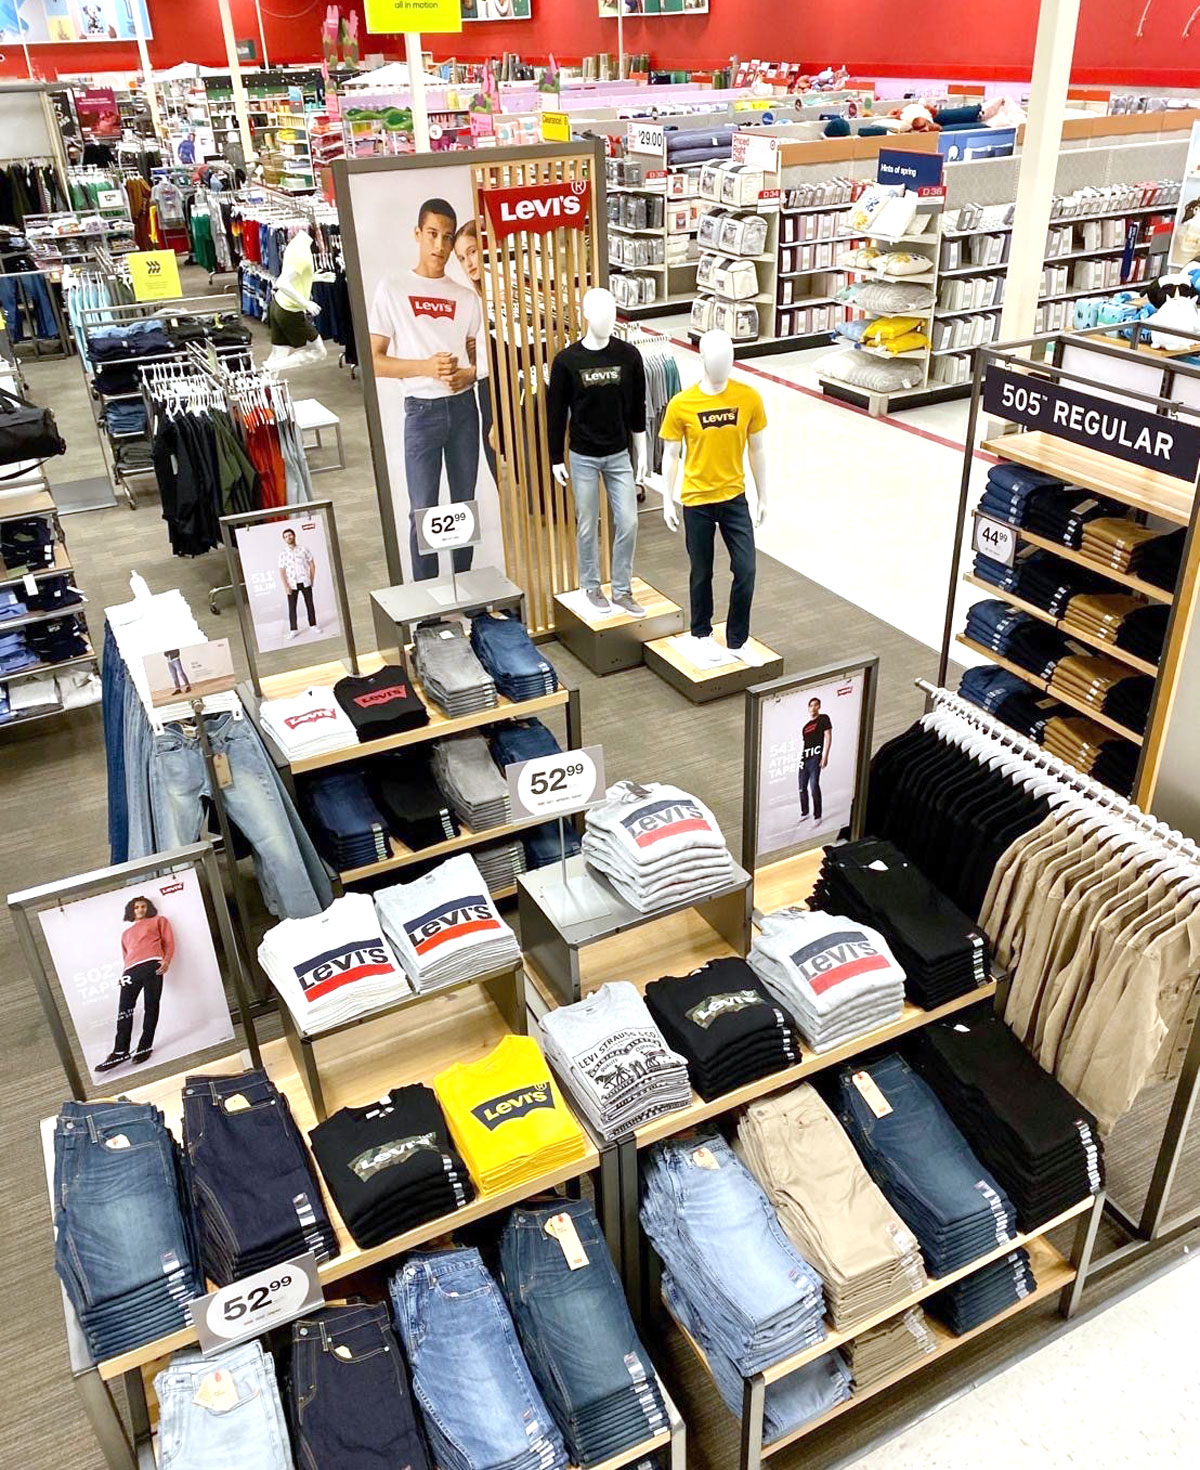 Levi's is increasing wholesale initiatives in the U.S. and Europe in 2021, planning more expansion, better branding and customer engagement.